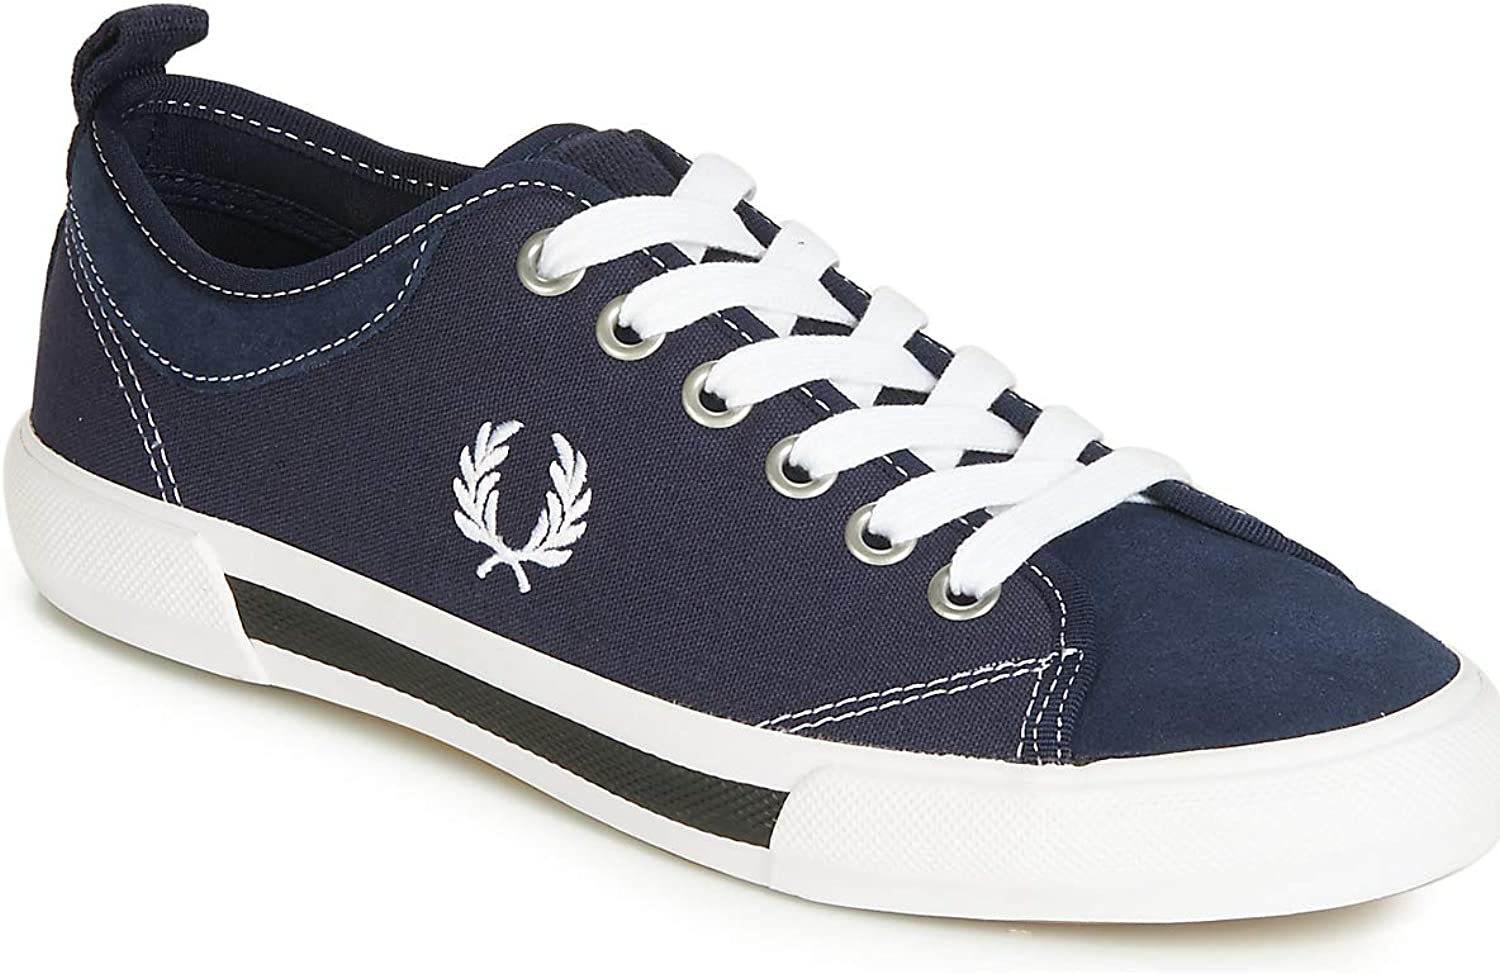 Frot Perry Horton Canvas Suede Turnschuhe Herren Blau Weiss Turnschuhe Low